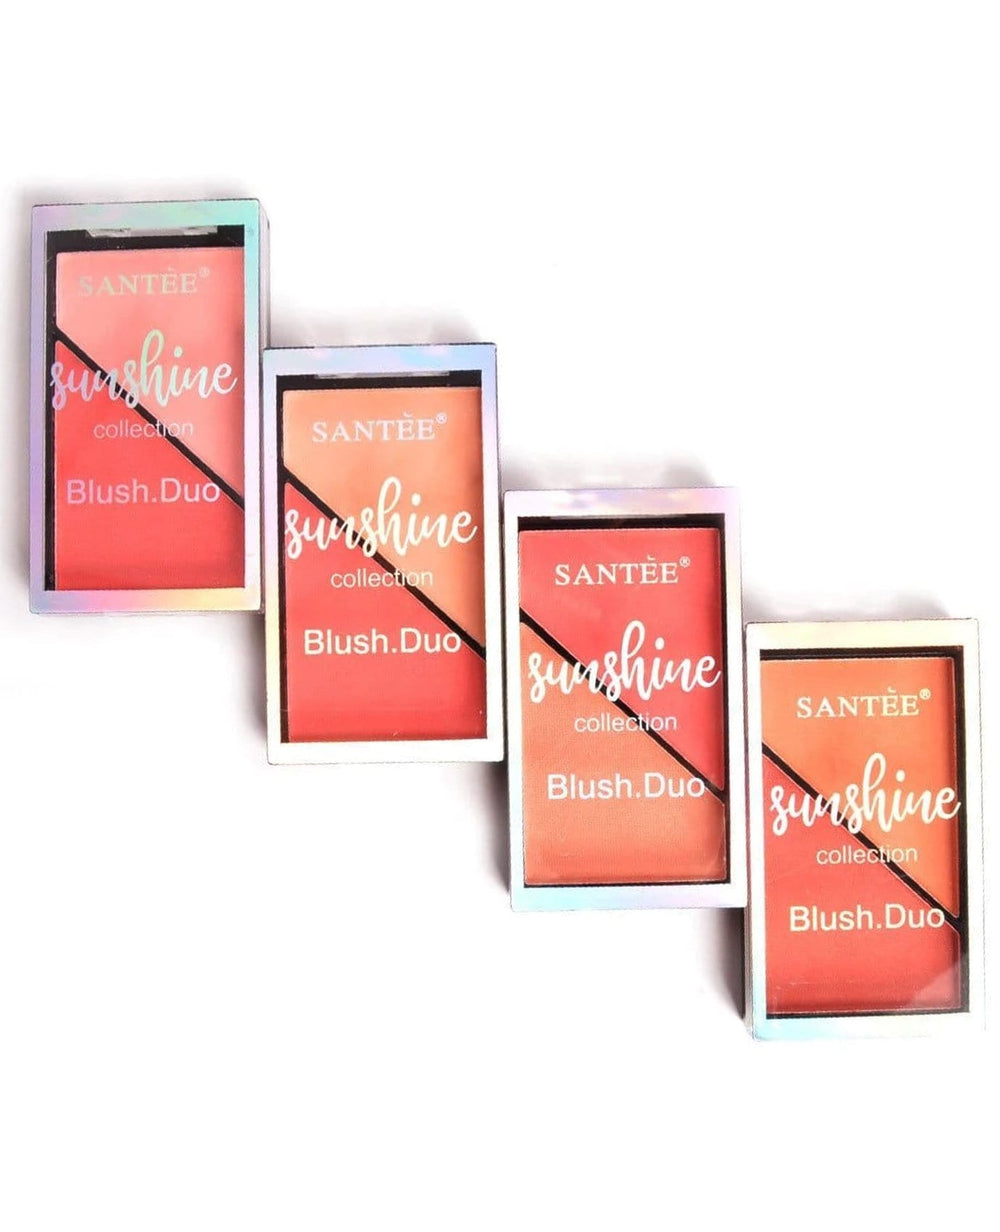 Santee Sunshine Collection Blush Duo